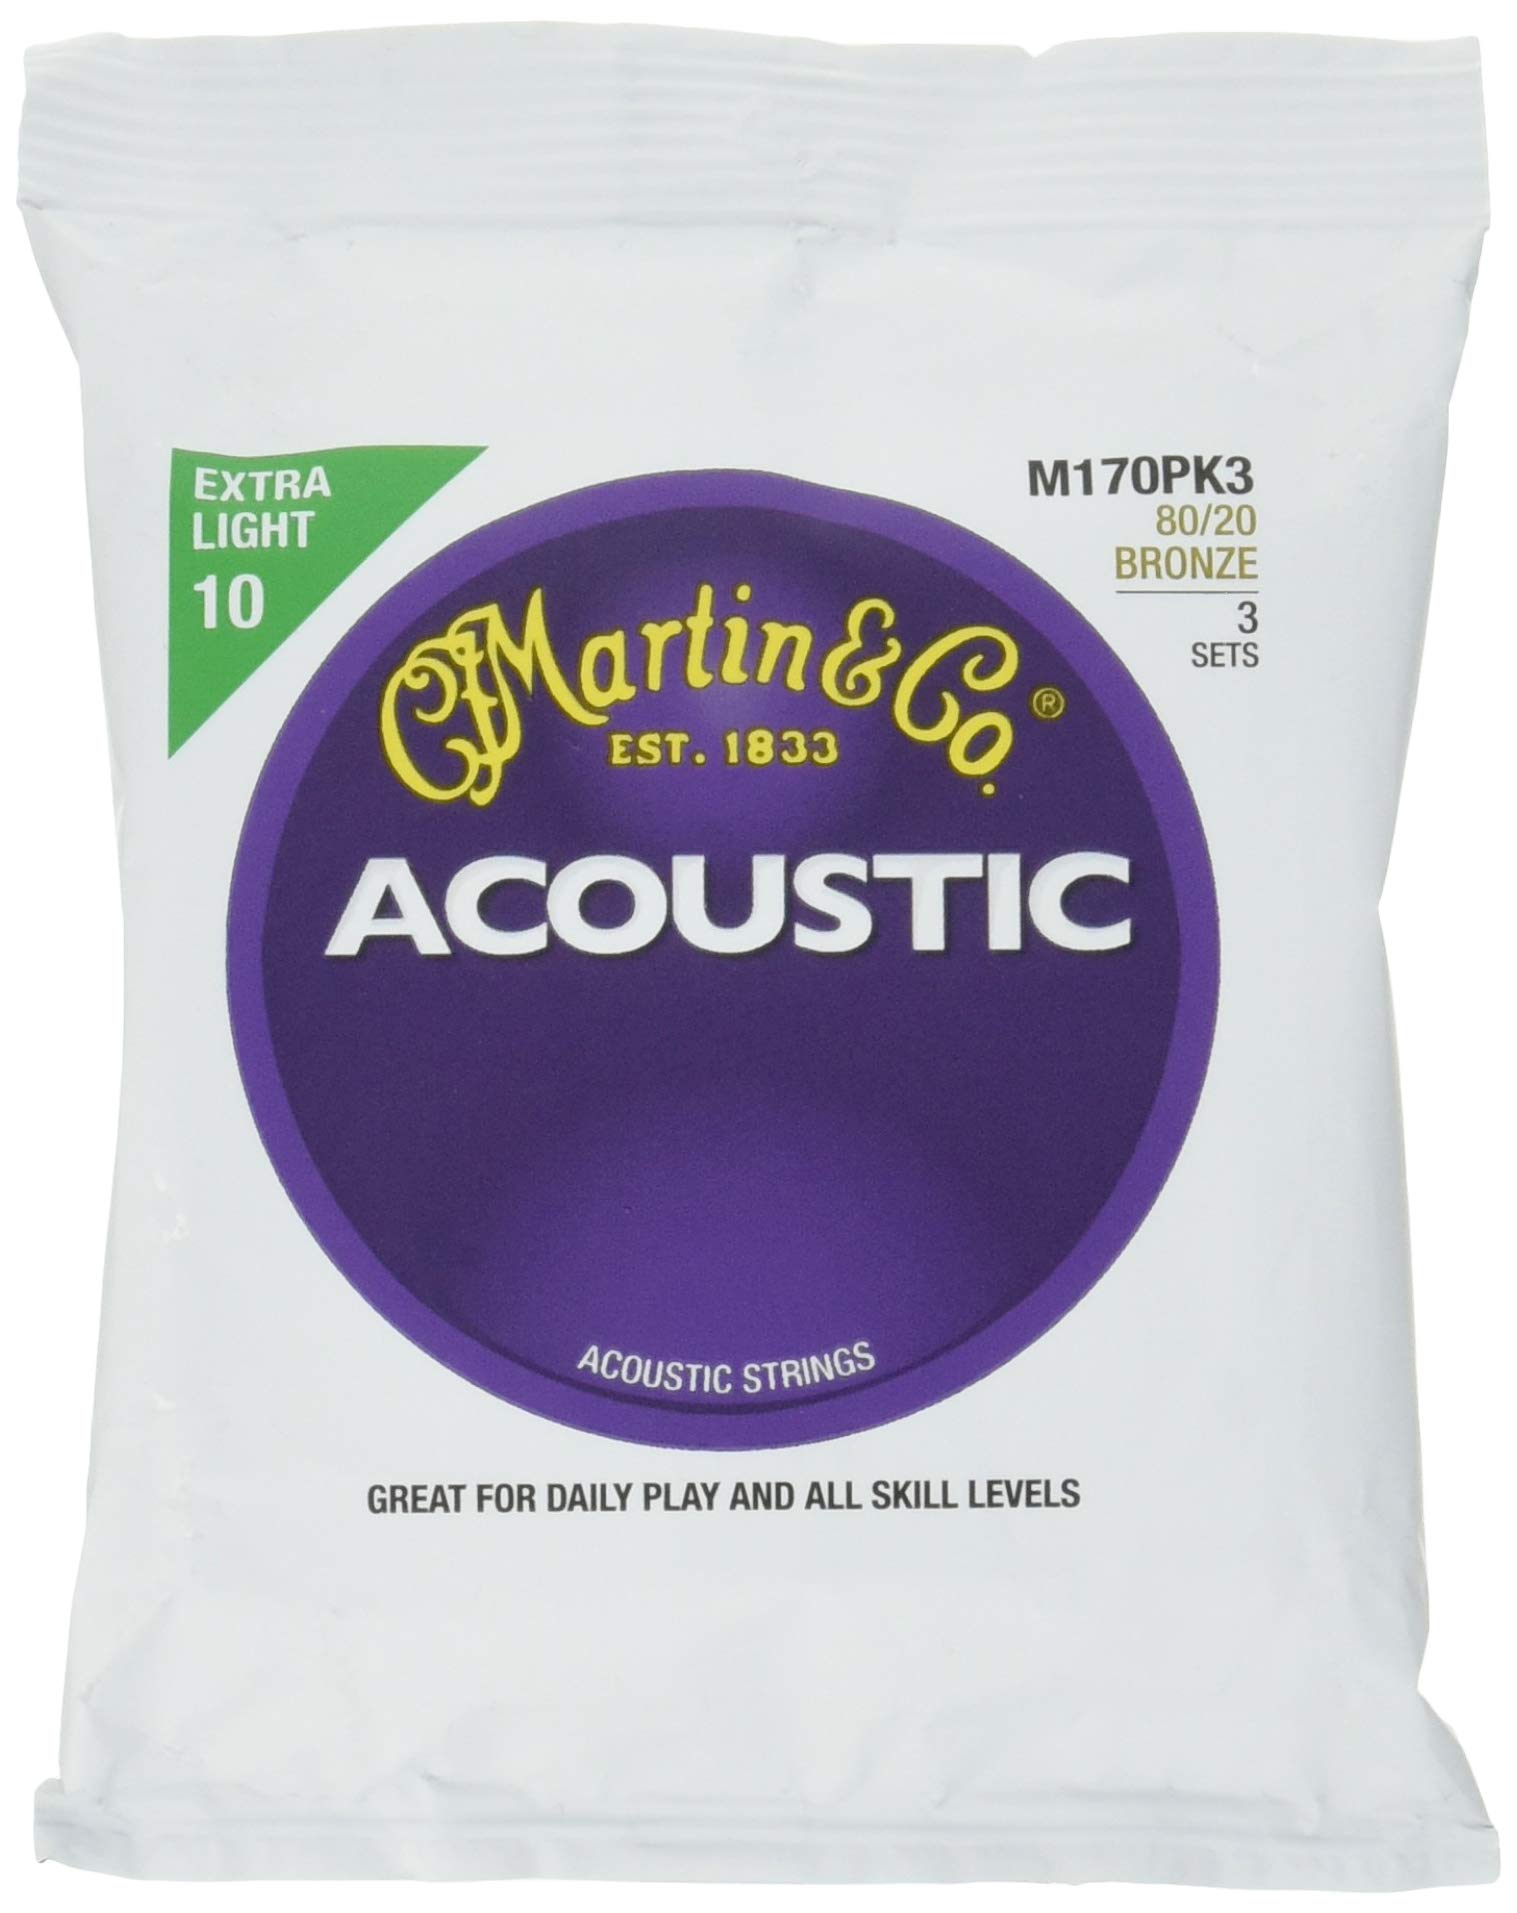 Martin M170 80/20 Bronze Acoustic Guitar Strings, Extra Light - 3 Pack with Picks by Martin